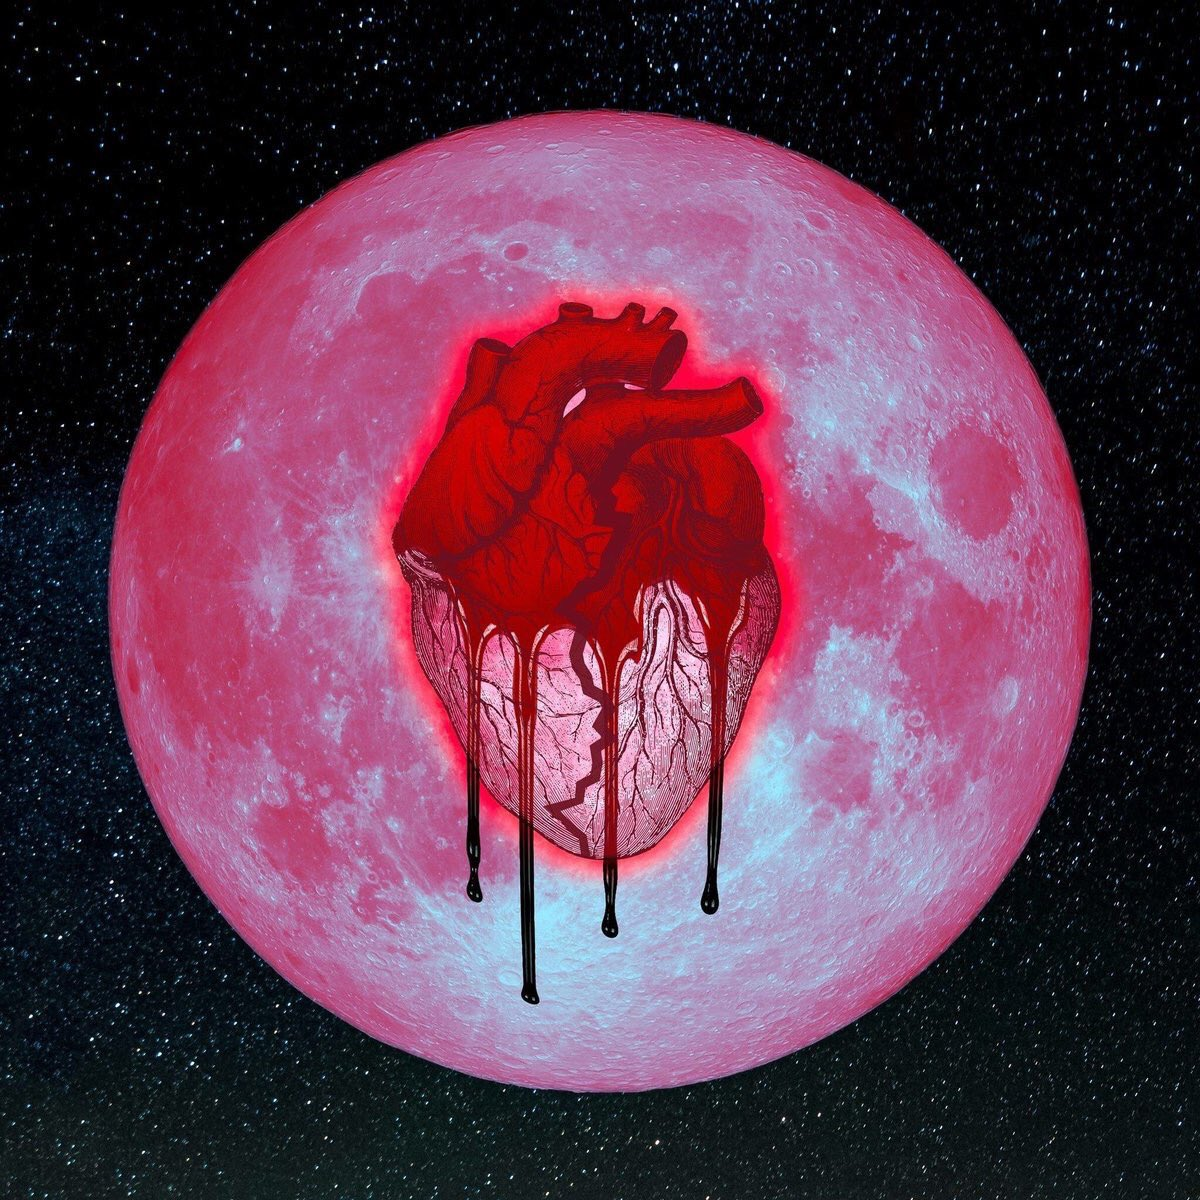 Download #HeartbreakOnAFullMoon on @AppleMusic now! 💔🌕 https://t.co/nwuZsaM9xF… https://t.co/i7L1oxCtUh